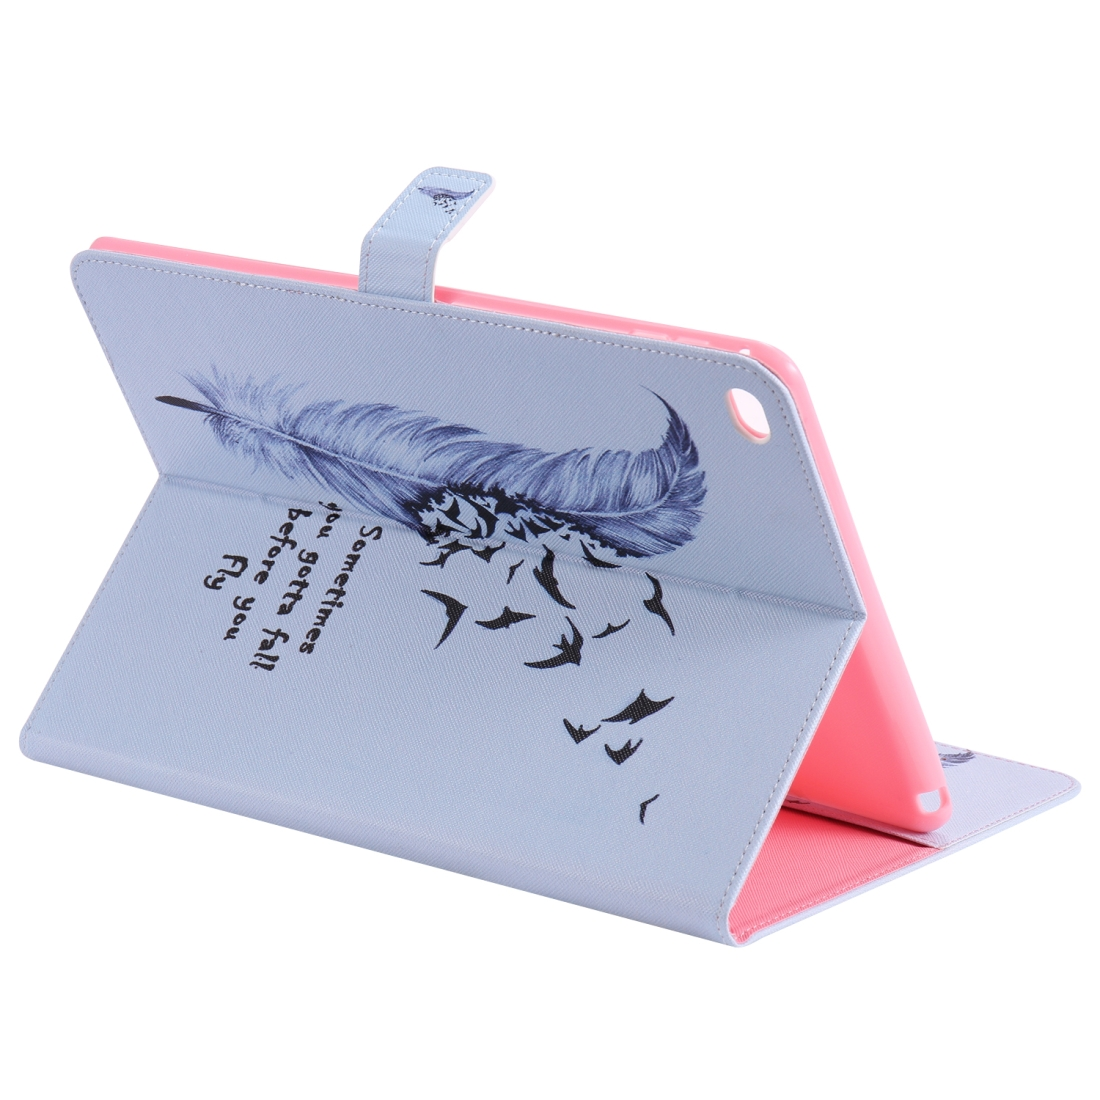 iPad 5th Generation Case Fits iPad 5 & 6, Leather With A Slim Profile & Auto Sleep (Feather)